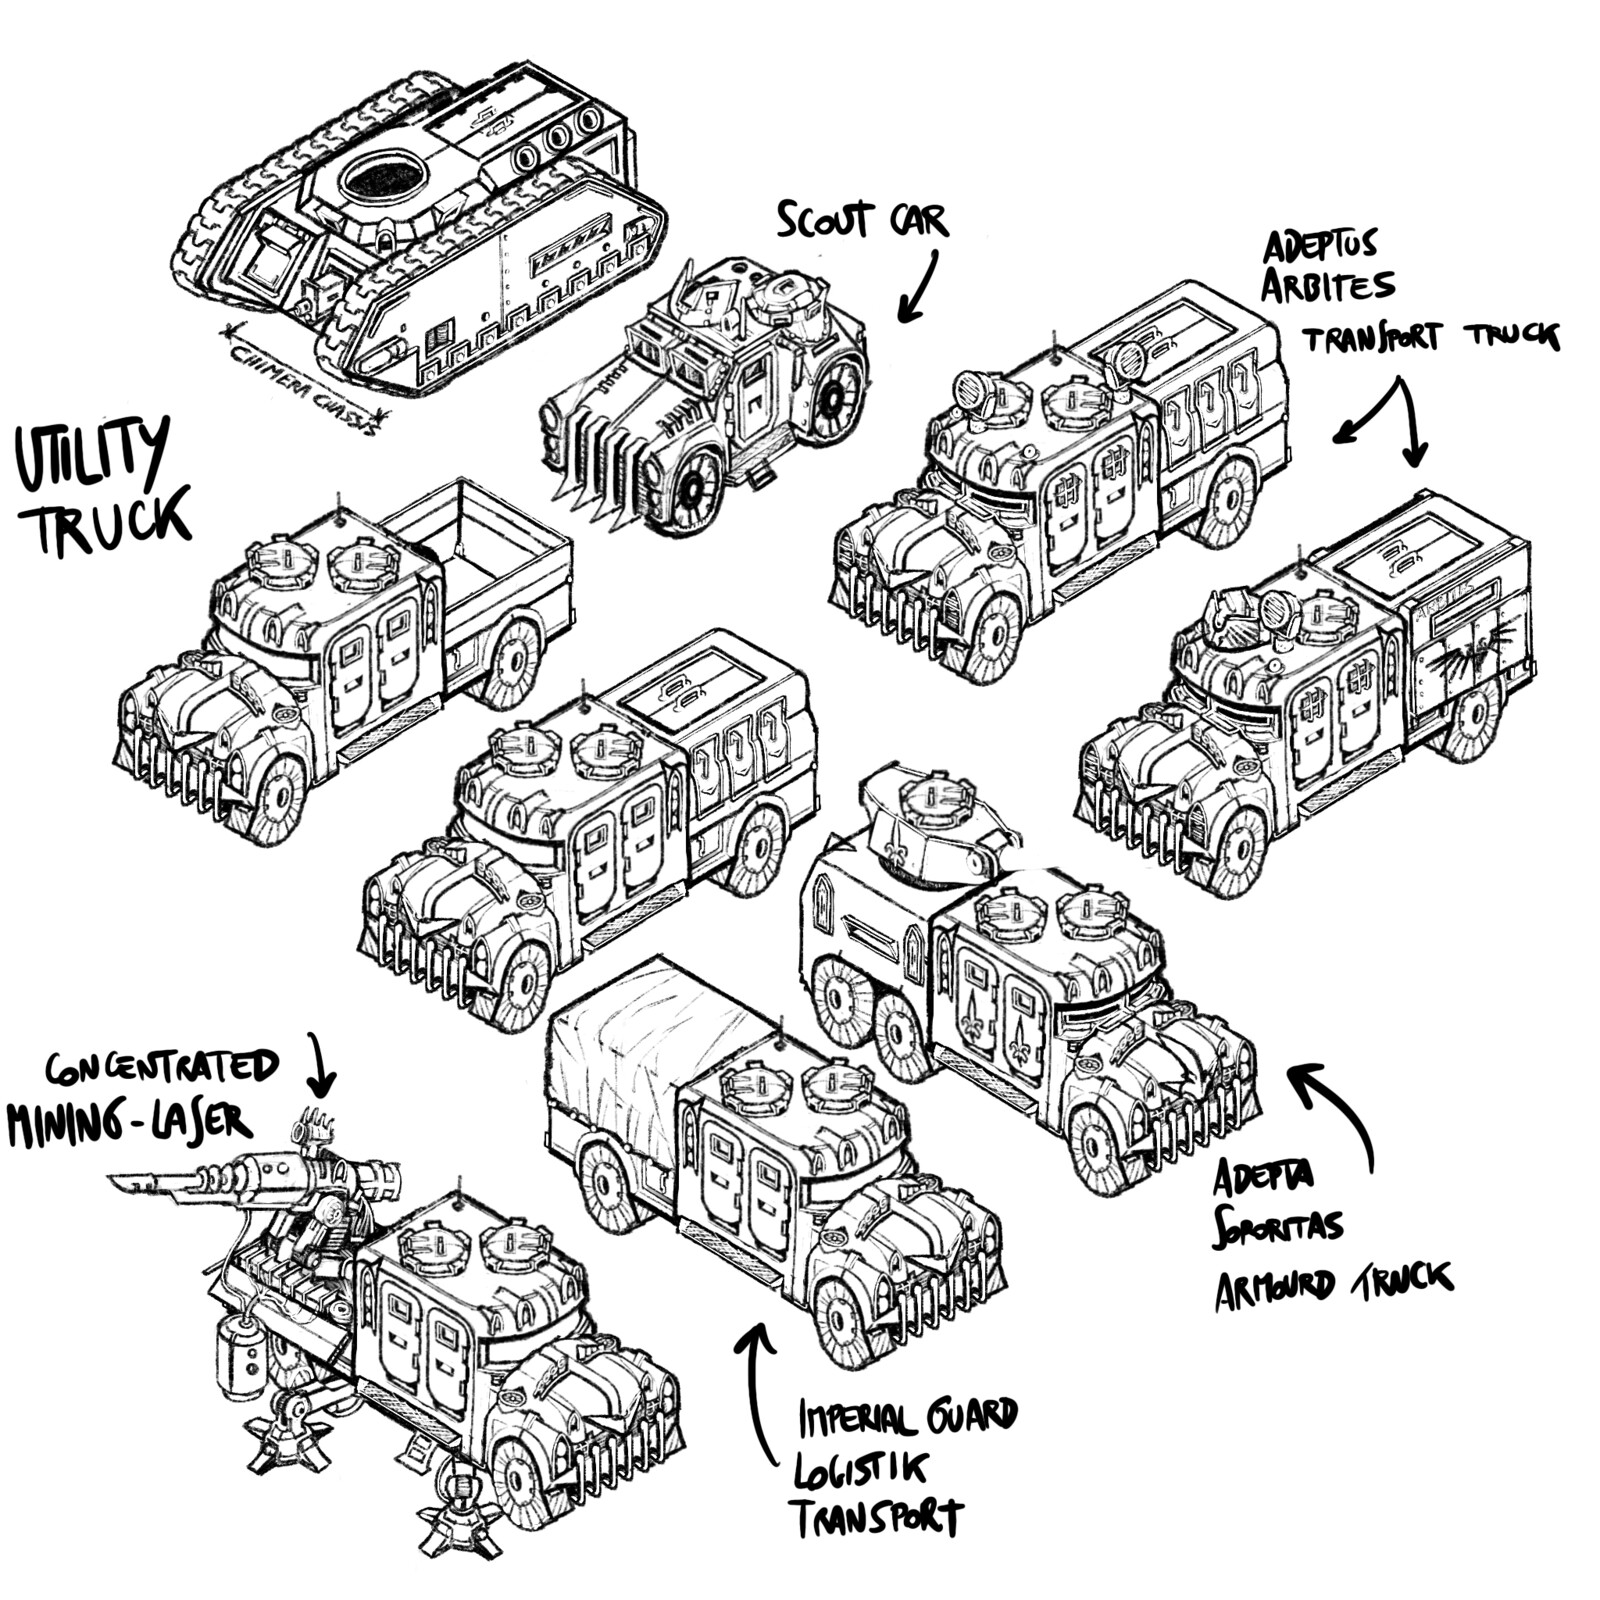 -with a truck you can move more troops on the front - transport more ammunition for tanks and cannons -moving heavy cannons - enrich your Imperial Guard army with new vehicles (they are never enough...)